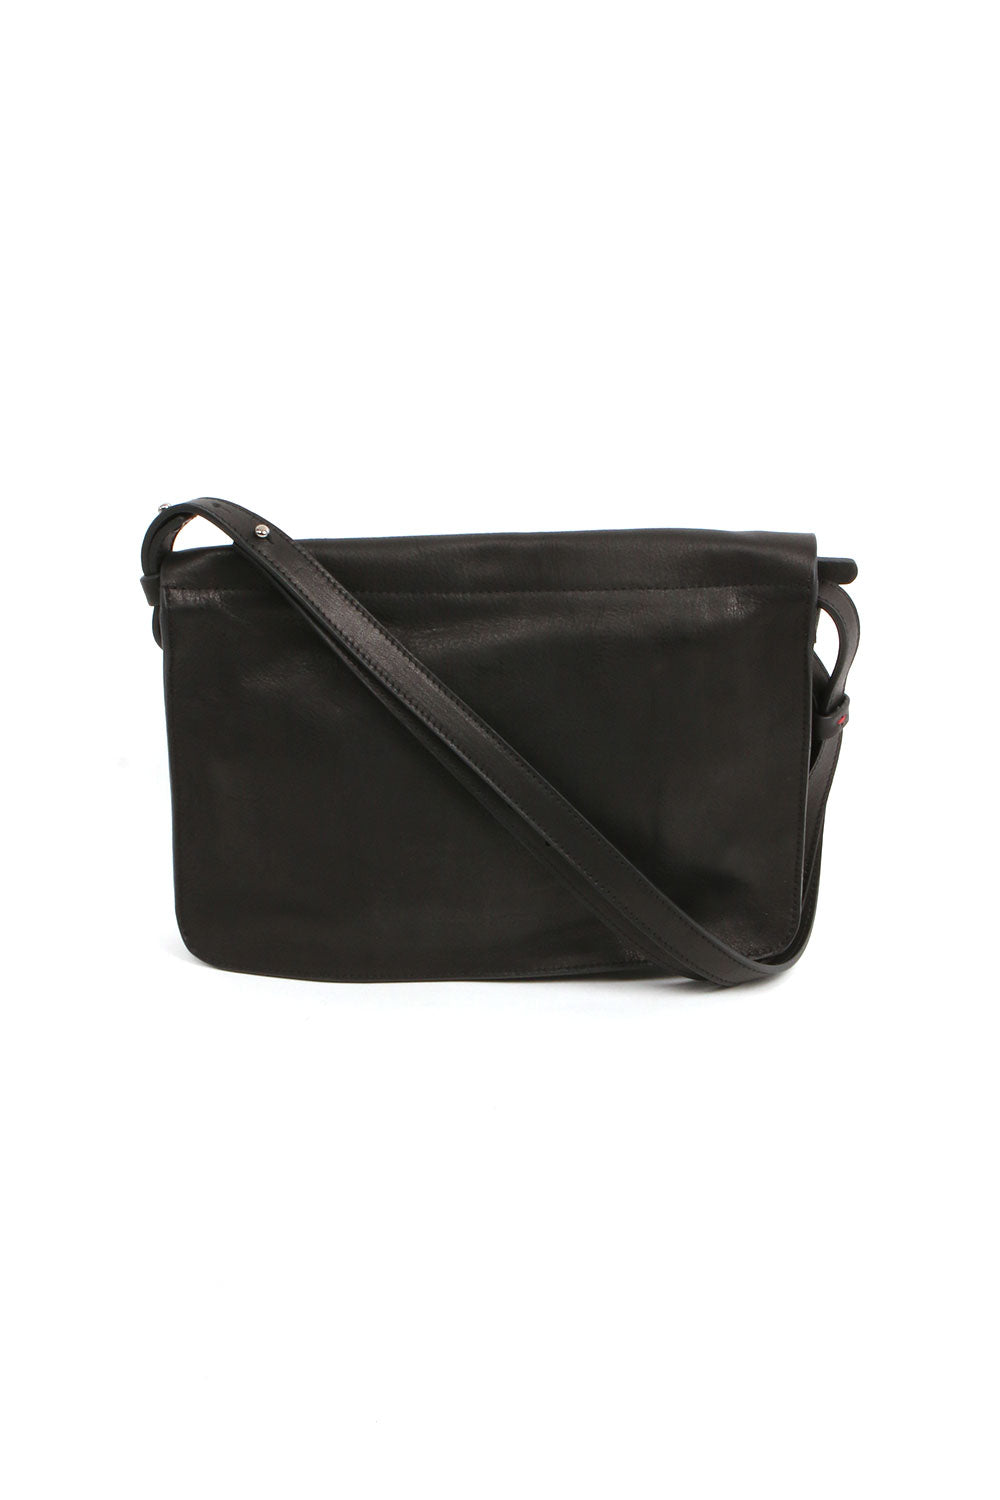 Emma Black Handbag